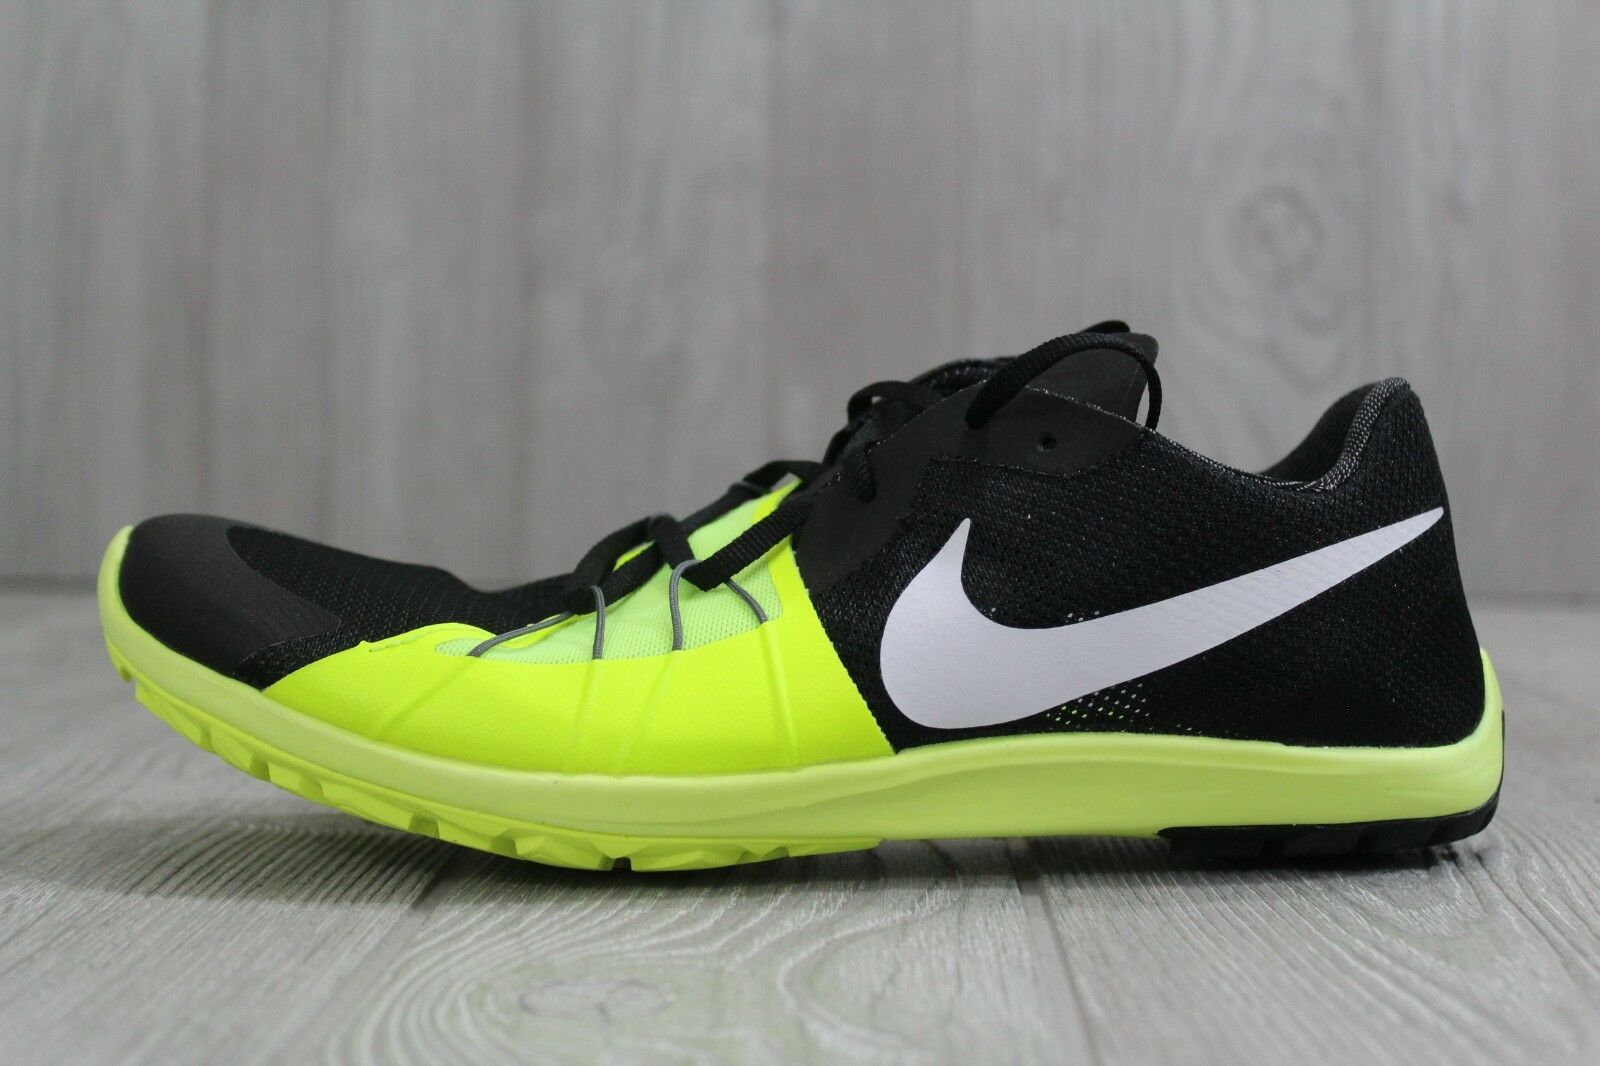 Seasonal clearance sale 32 Mens NIKE Zoom Forever Waffle 5 XC Black Spikeless Cross Country Shoes 8 9